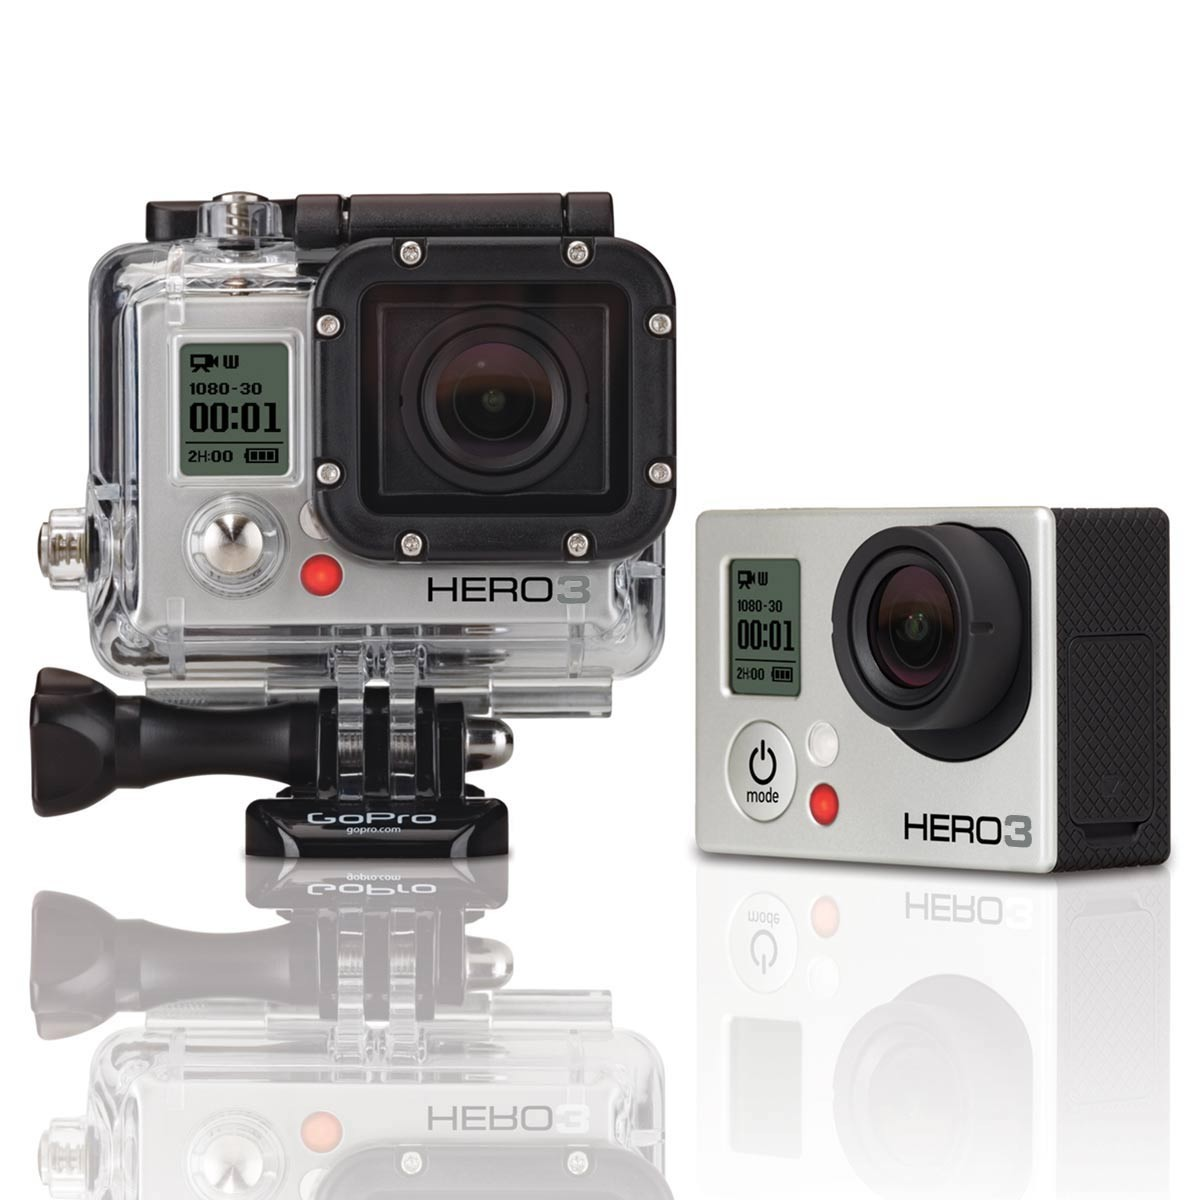 go_pro_hero3_plus_silver_review